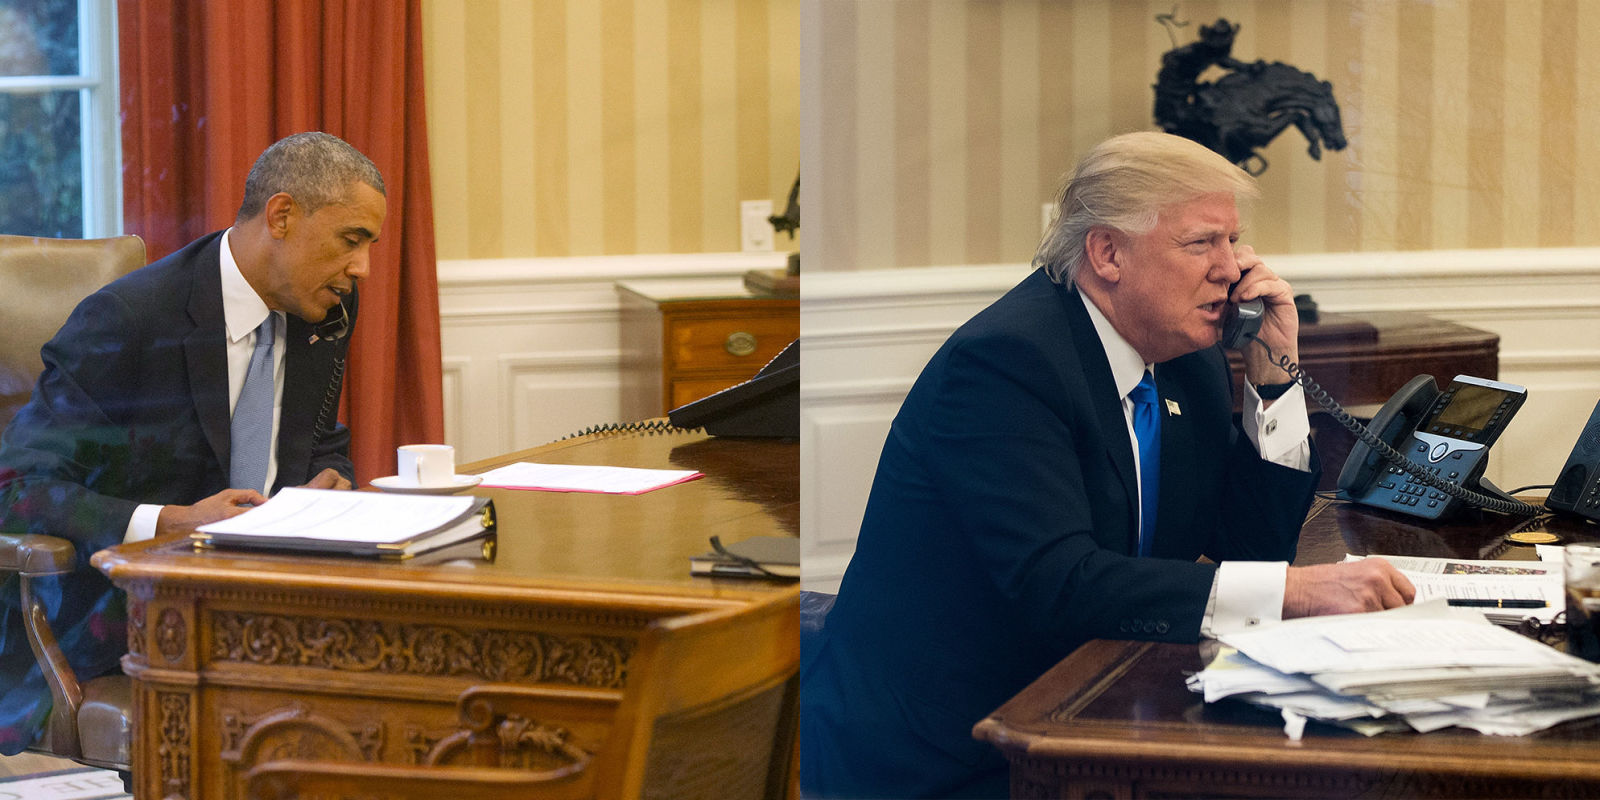 Dtrump His Messy Desk